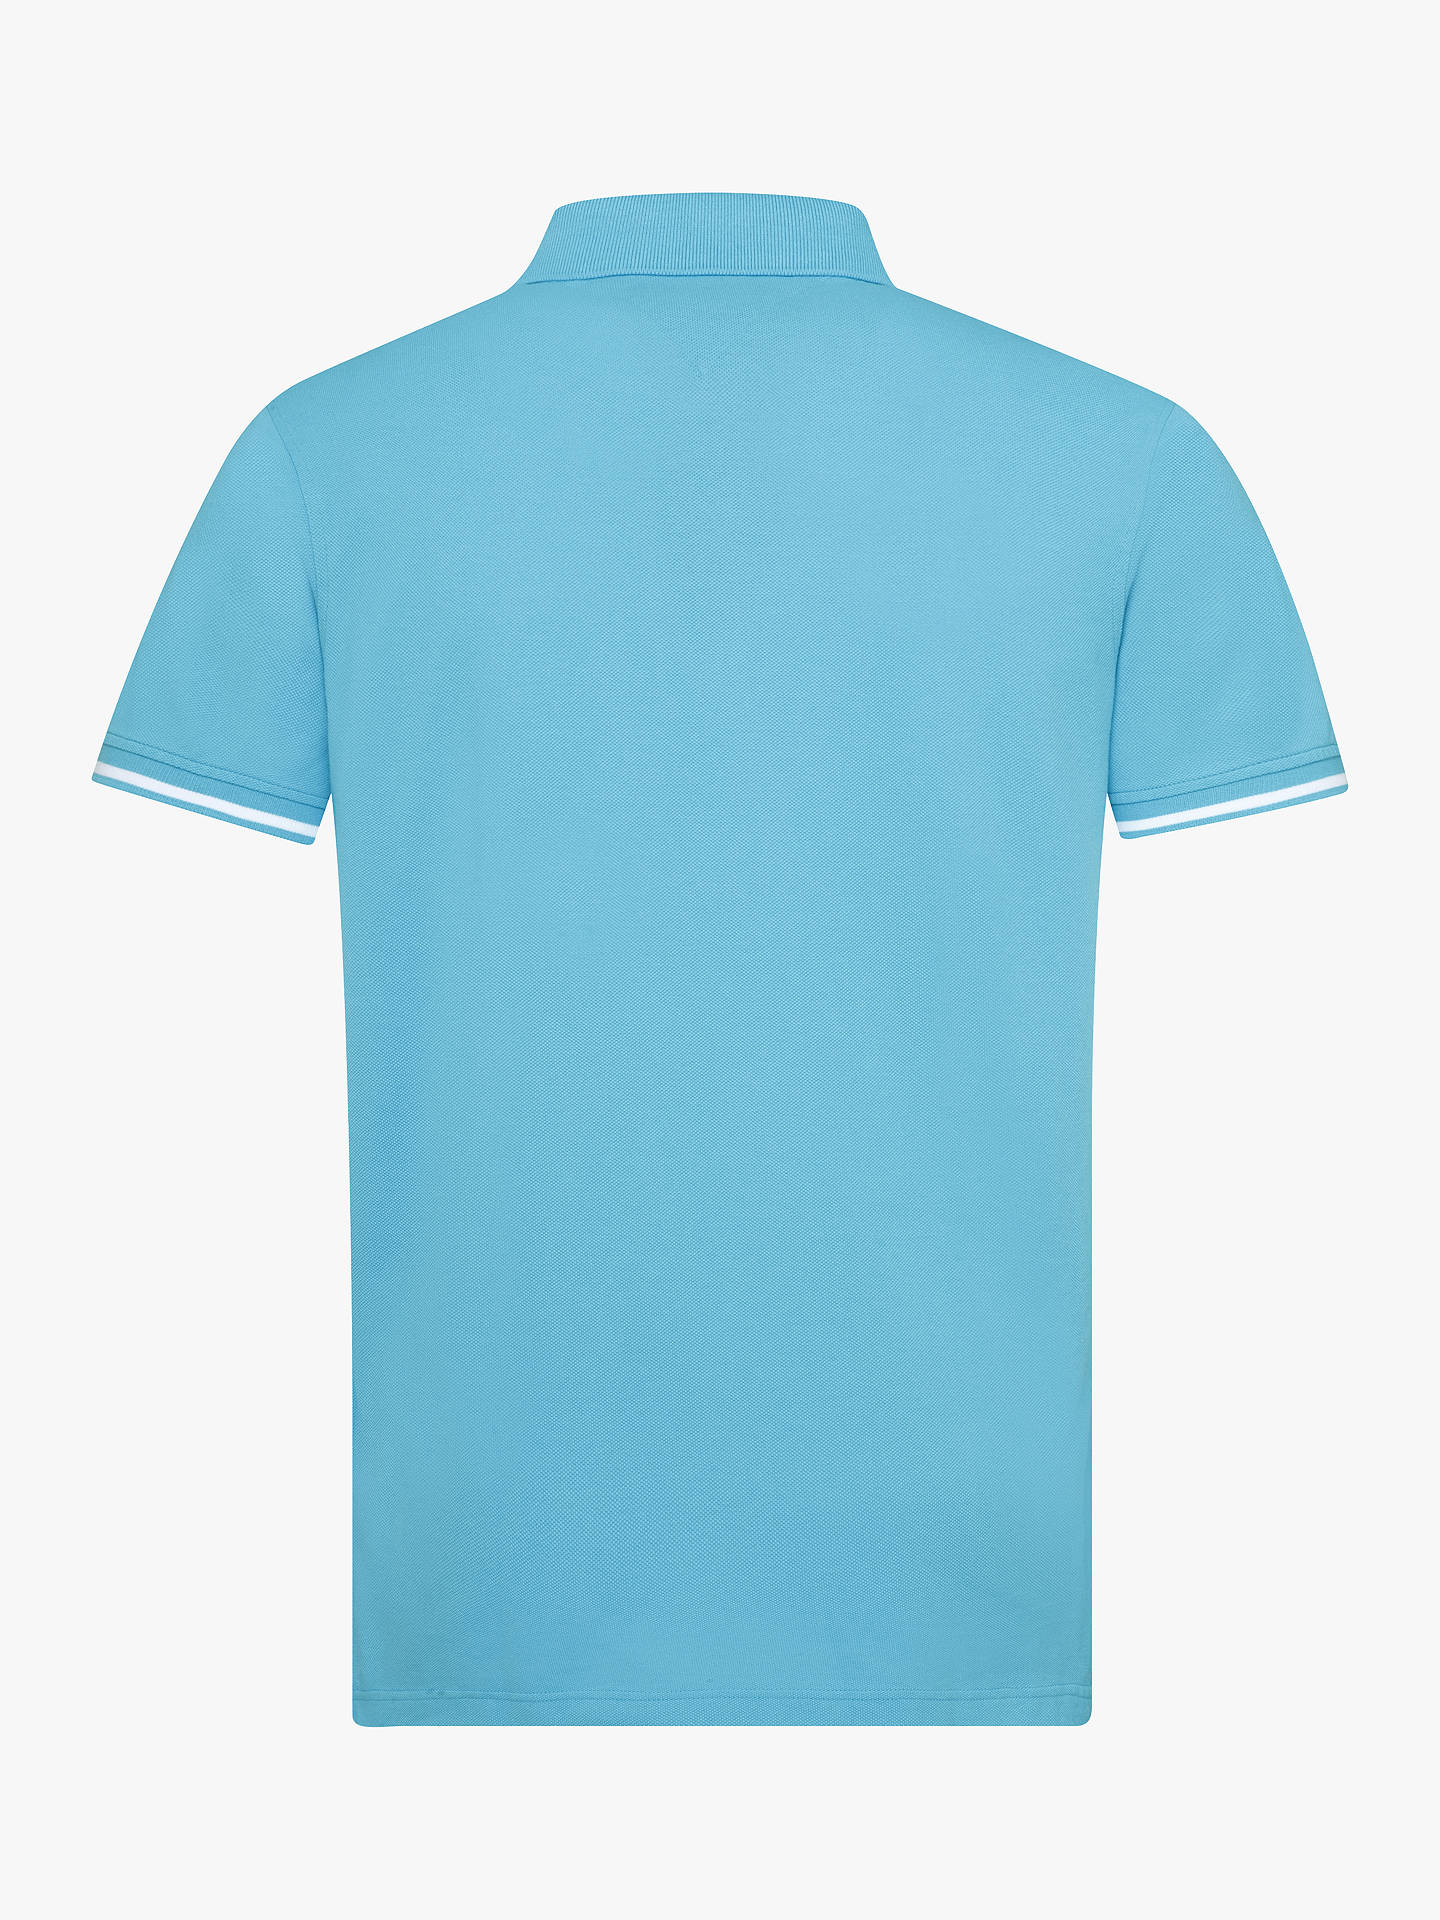 b7cb9f4f308 Buy Tommy Hilfiger Tipped Regular Fit Polo Shirt, Turquoise, S Online at  johnlewis.